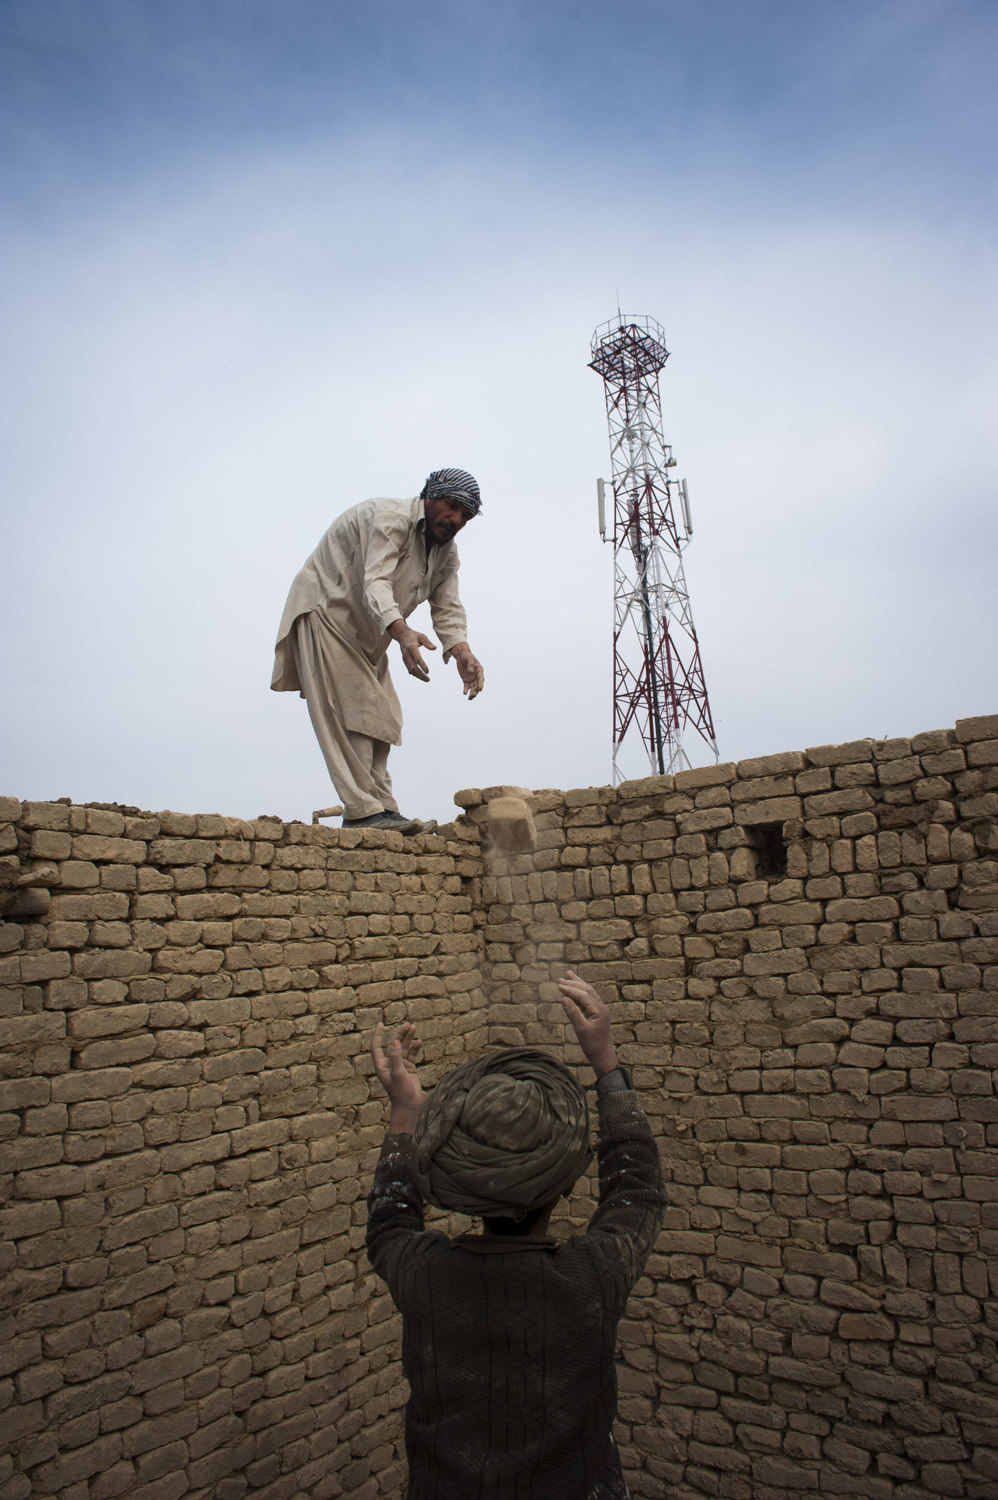 Day Laborer's chosen to build a wall in Kabul Afghanistan. Workers make 250 Afghans (3-5 dollars) a day and often come from provinces in Afghanistan to seek out  the unregulated labor market and often live in squalid conditions in order to send more money home.